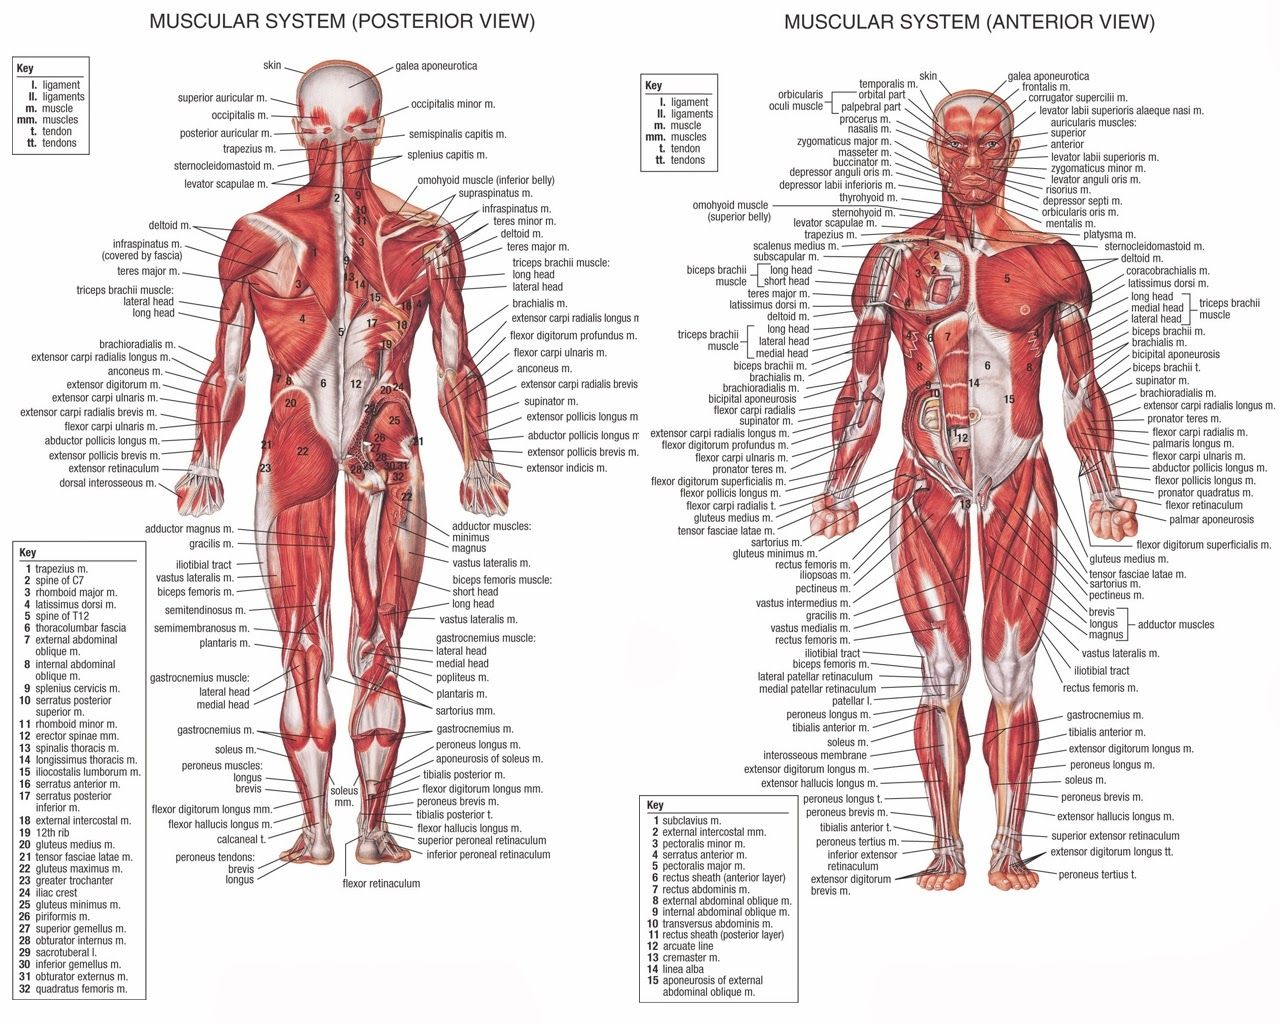 muscle map of human body muscle map human body - human anatomy, Muscles